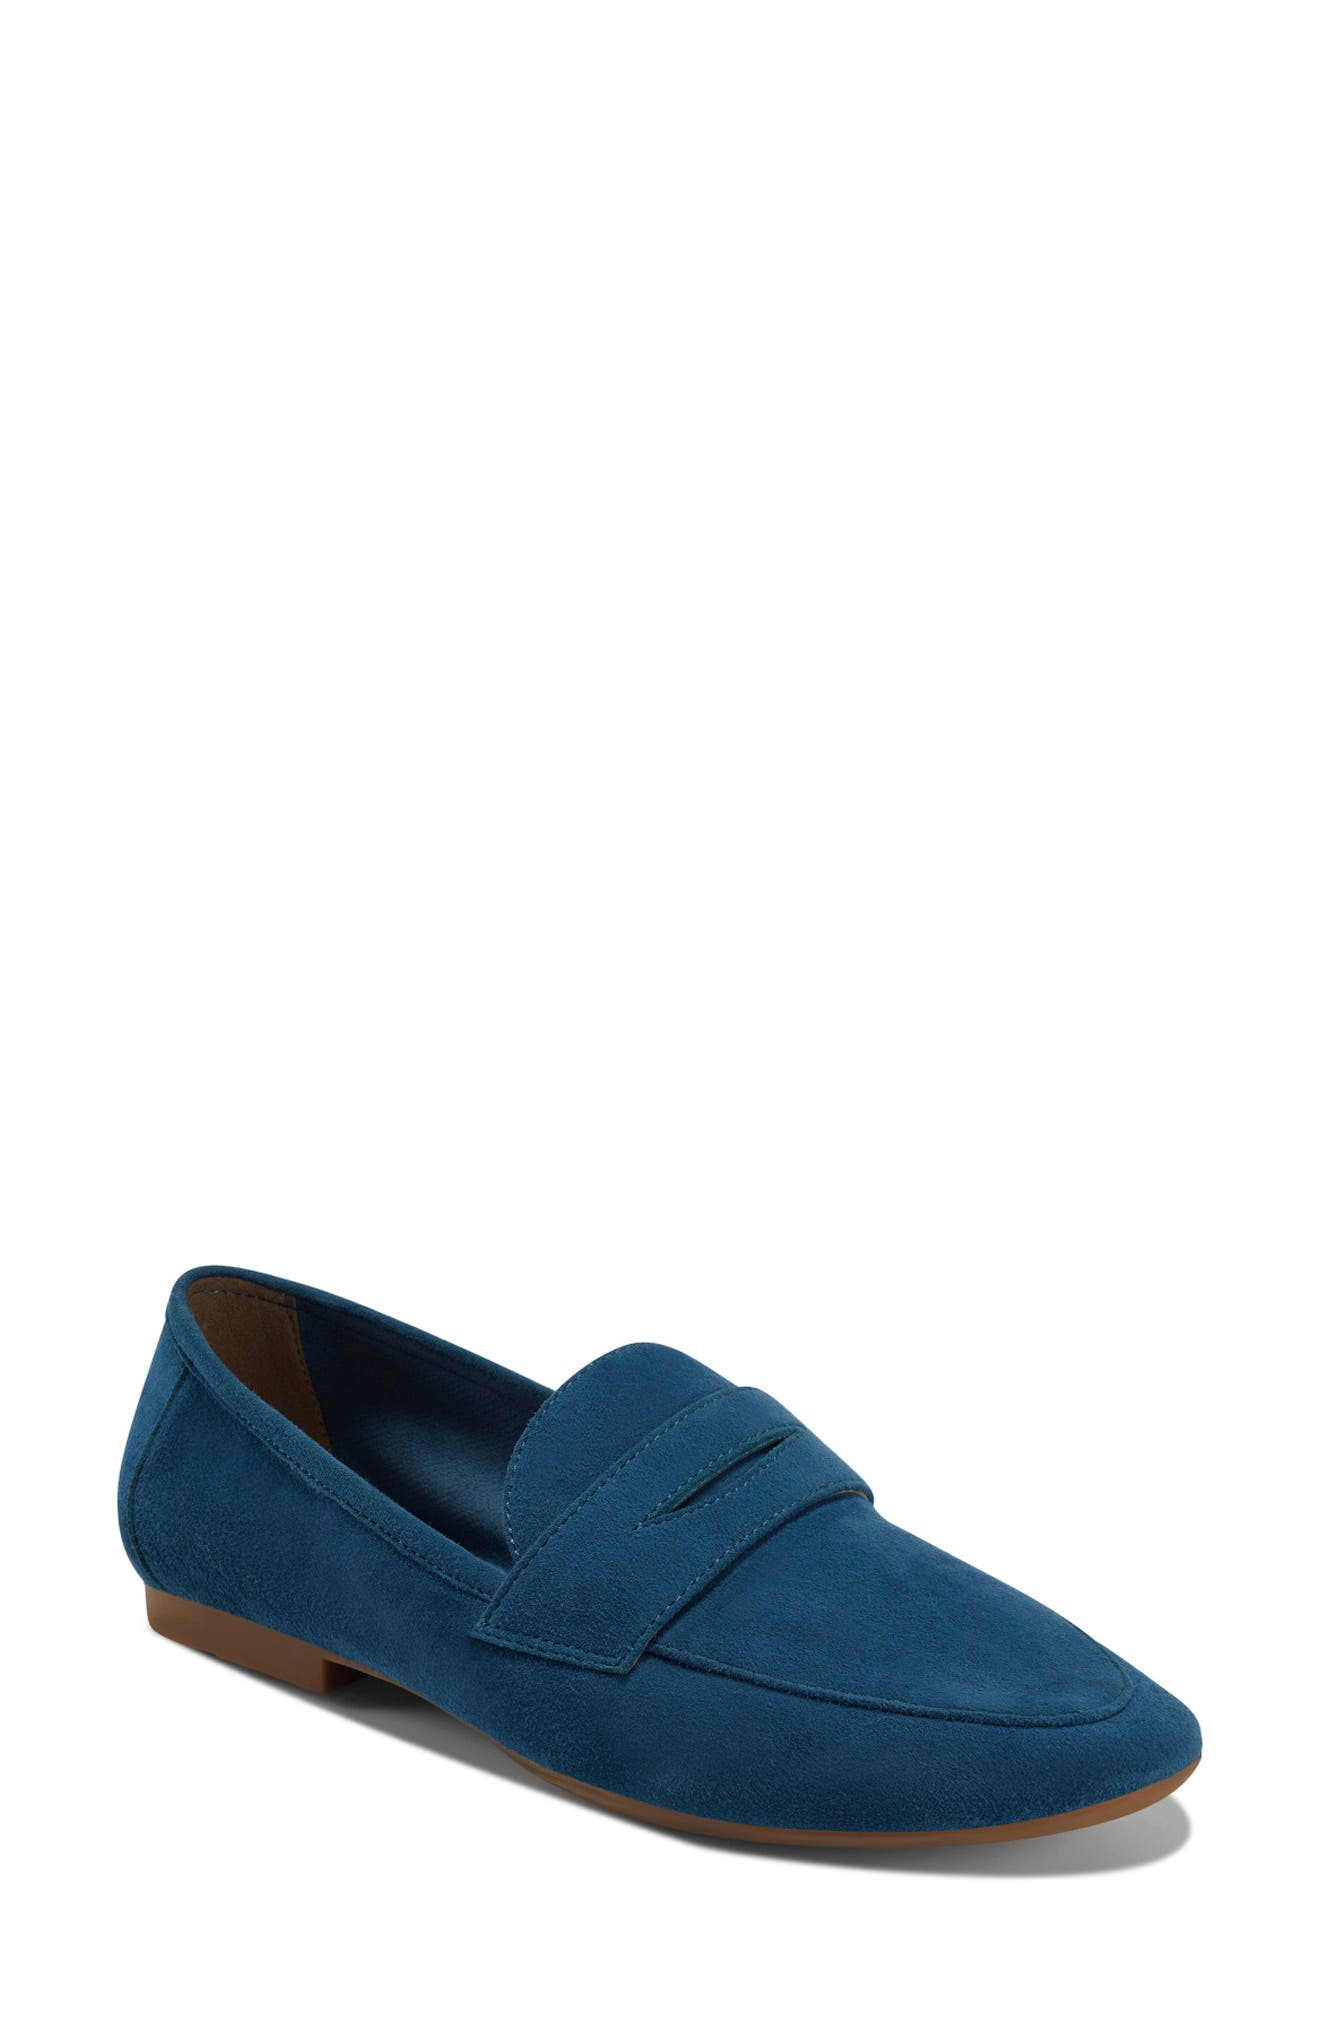 Hour Penny Loafer Flat